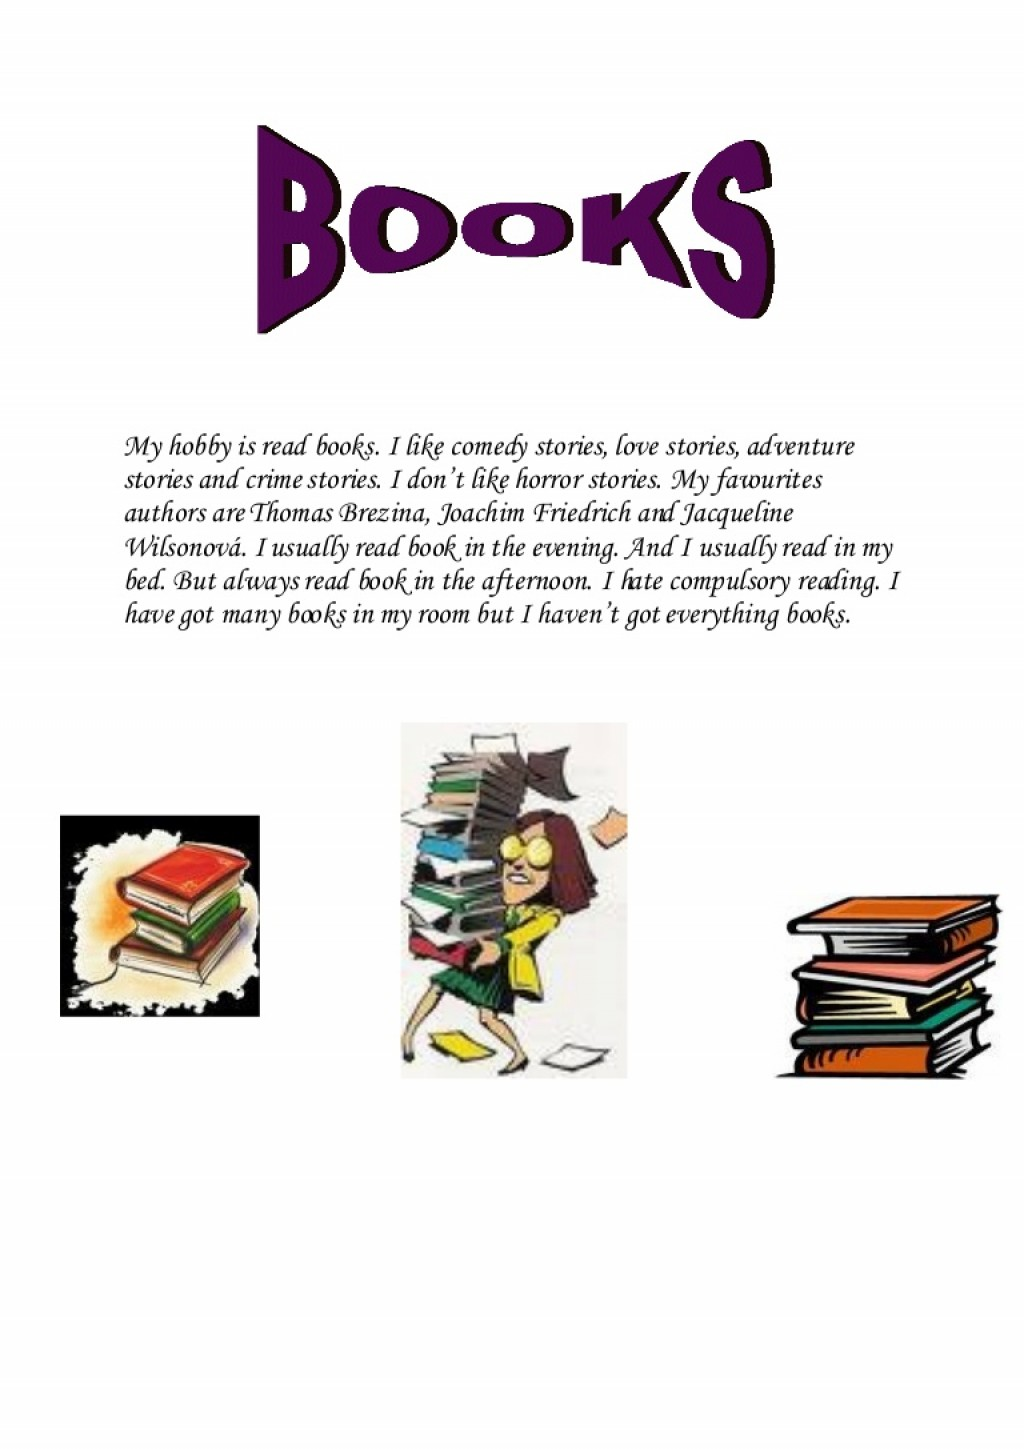 008 Read My Essay Hobby Is Booksverca Thumbnail Unusual Online Reddit For Free Large